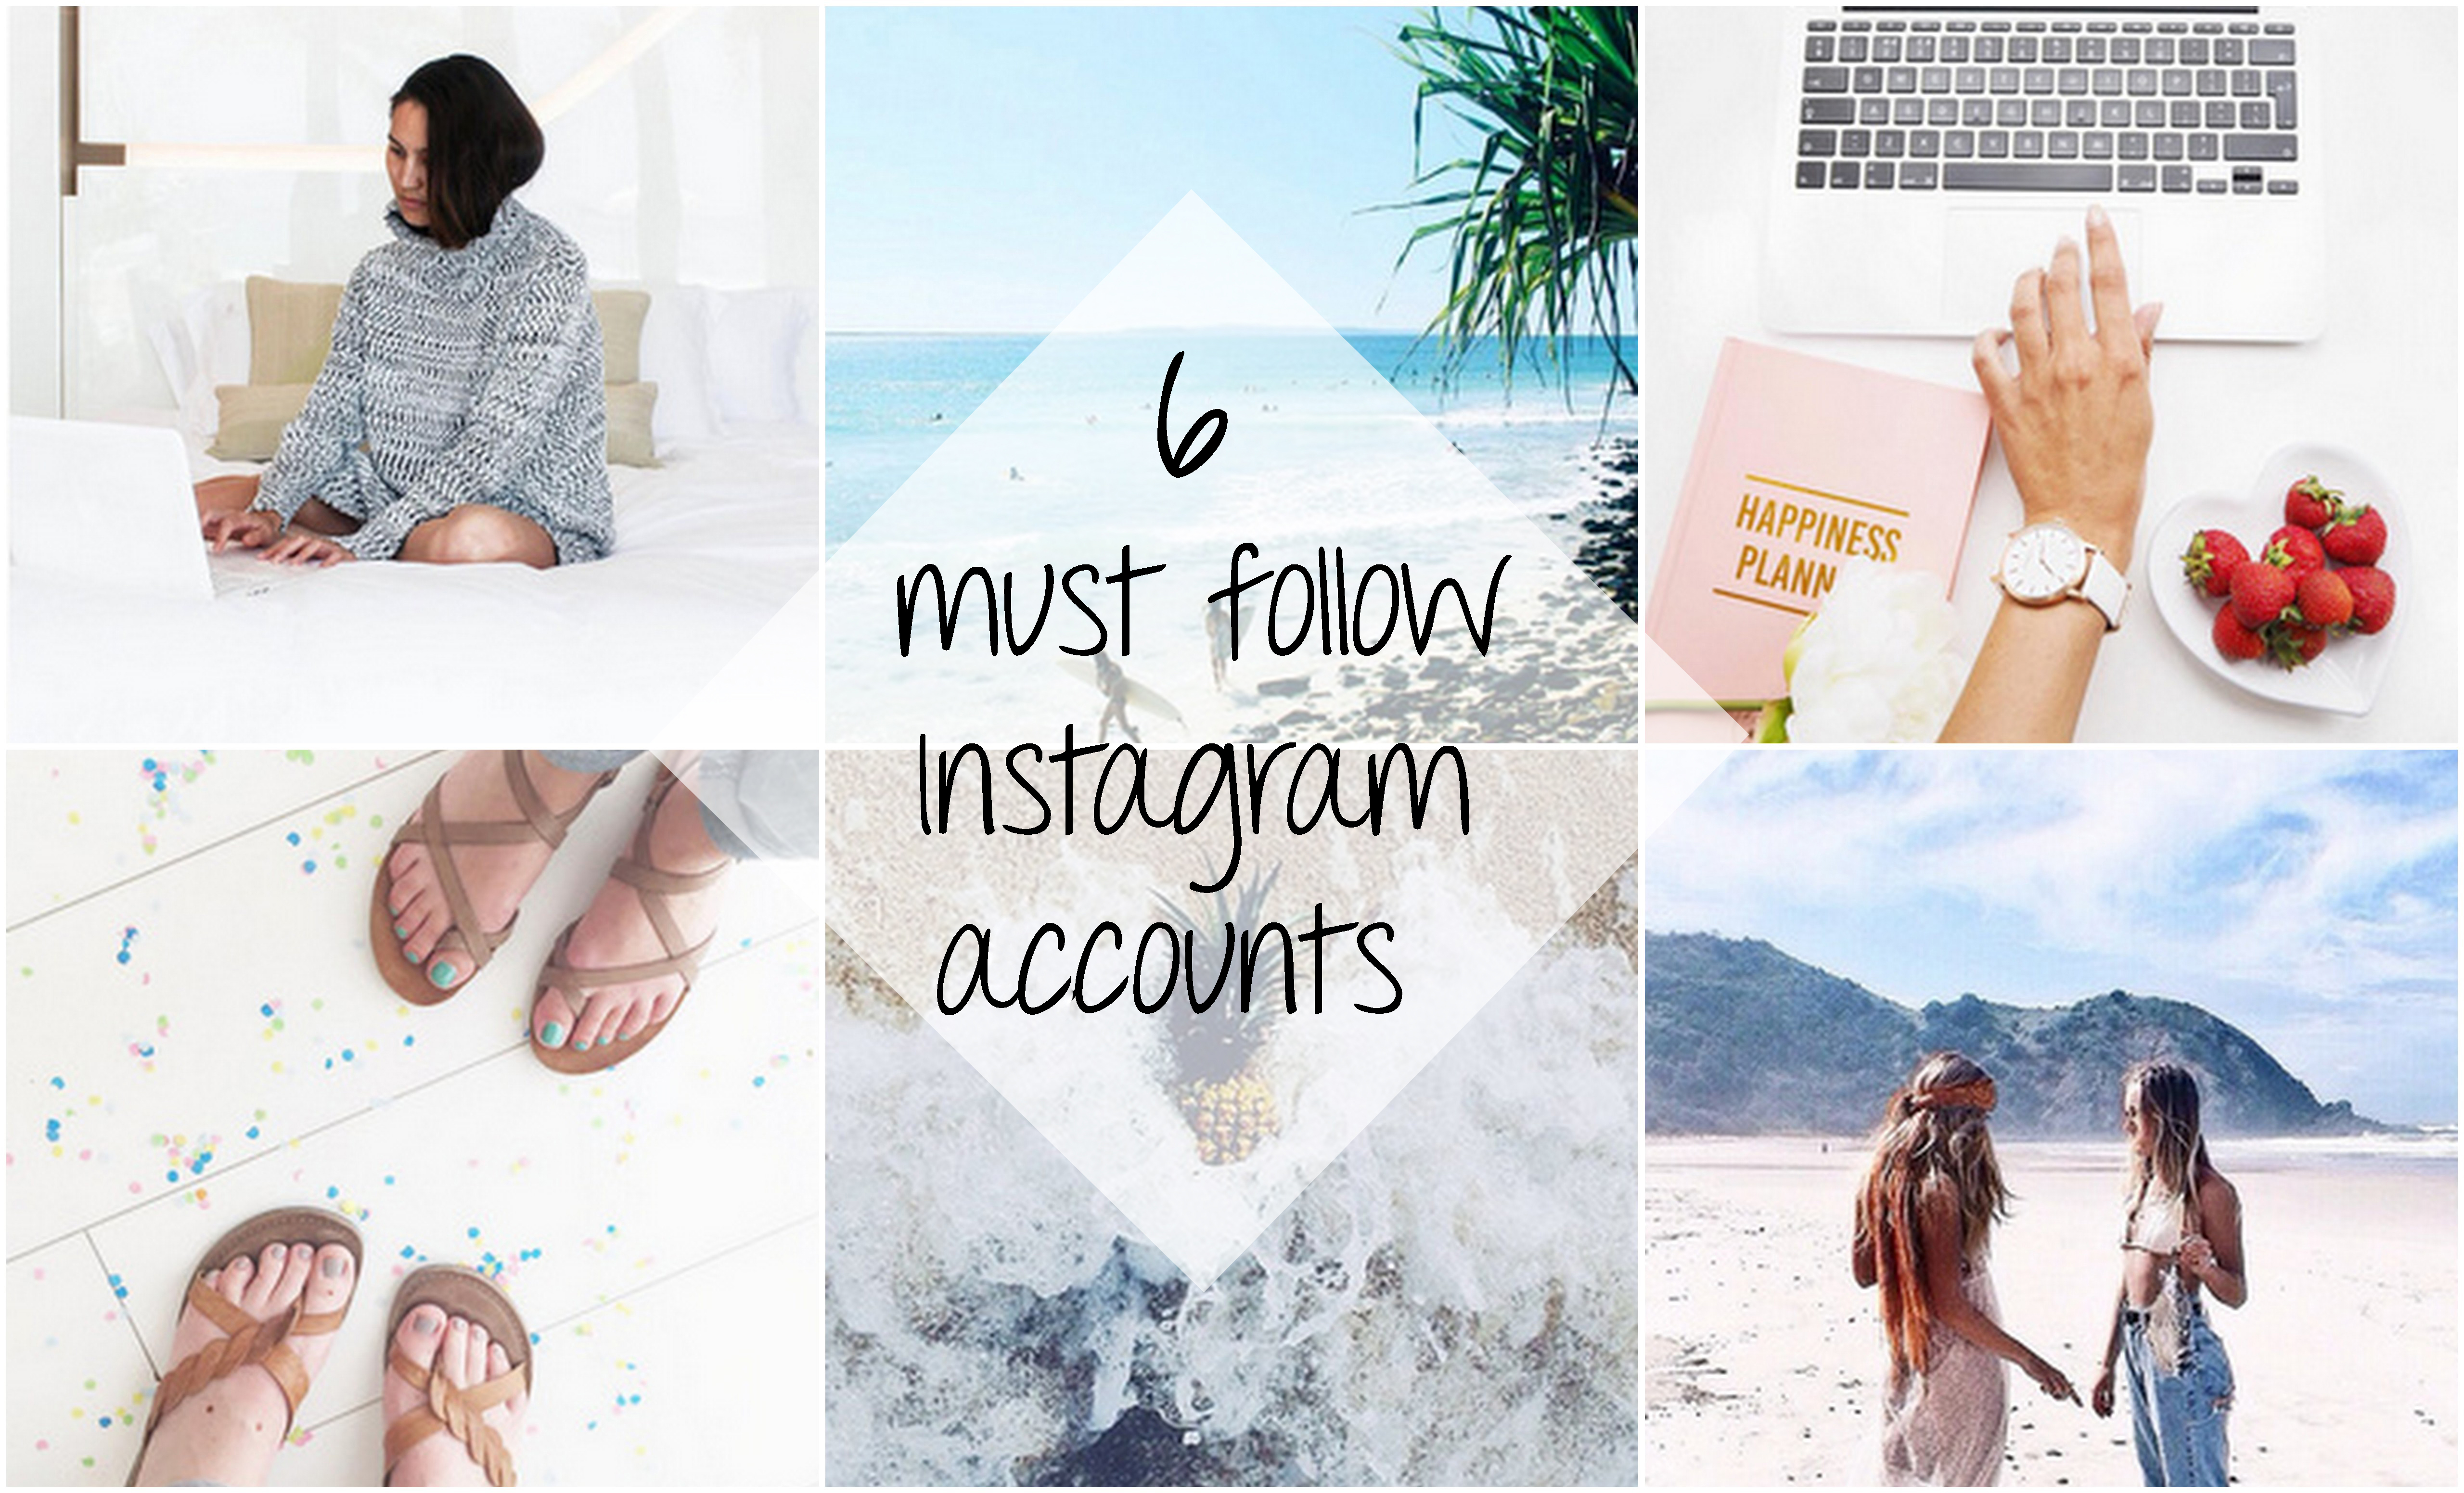 IG-accounts-5x